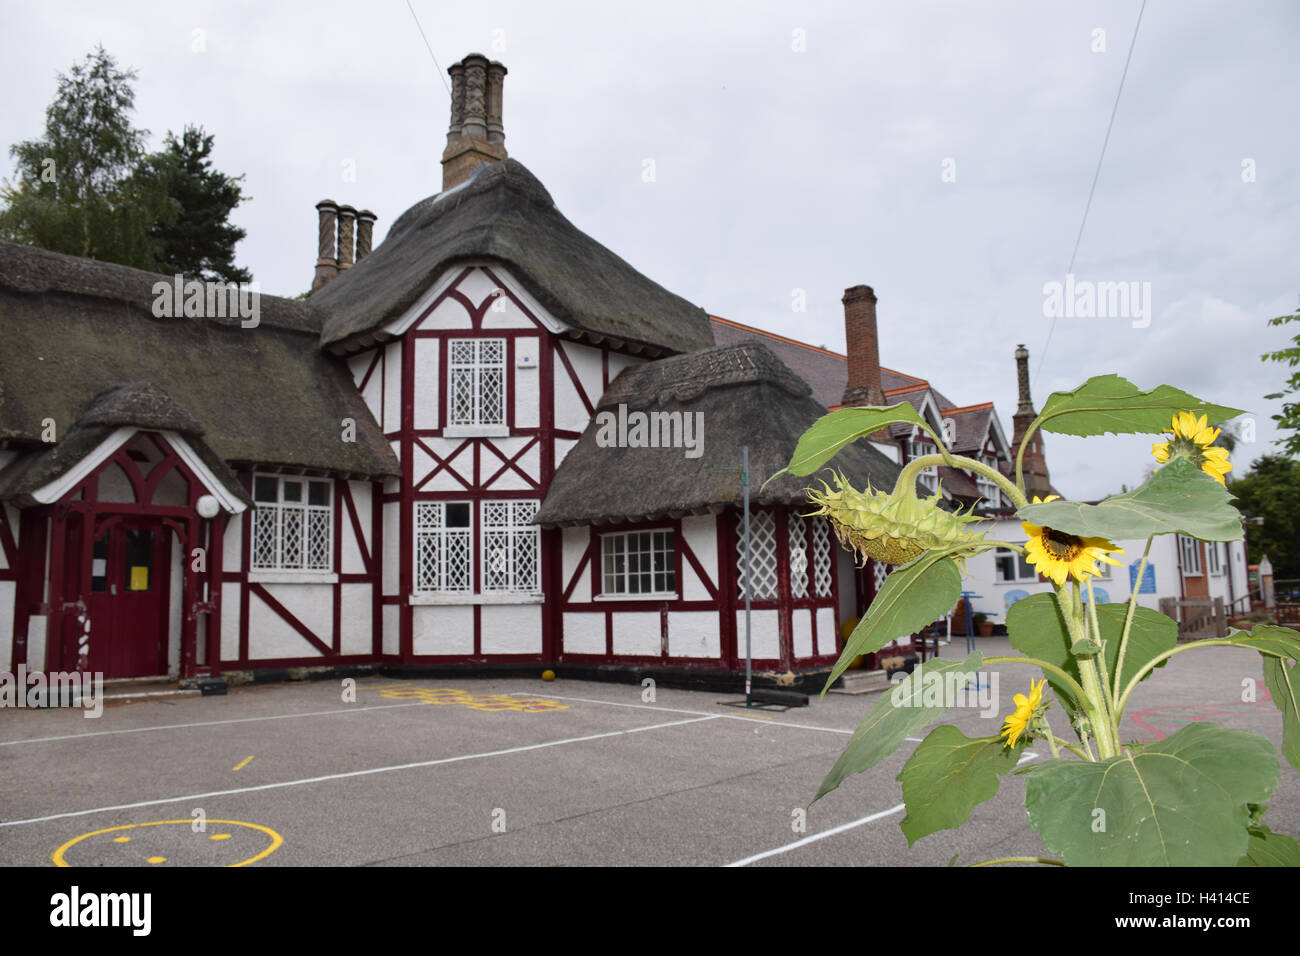 Somerleyton primary school with thatched roof, Suffolk UK - Stock Image